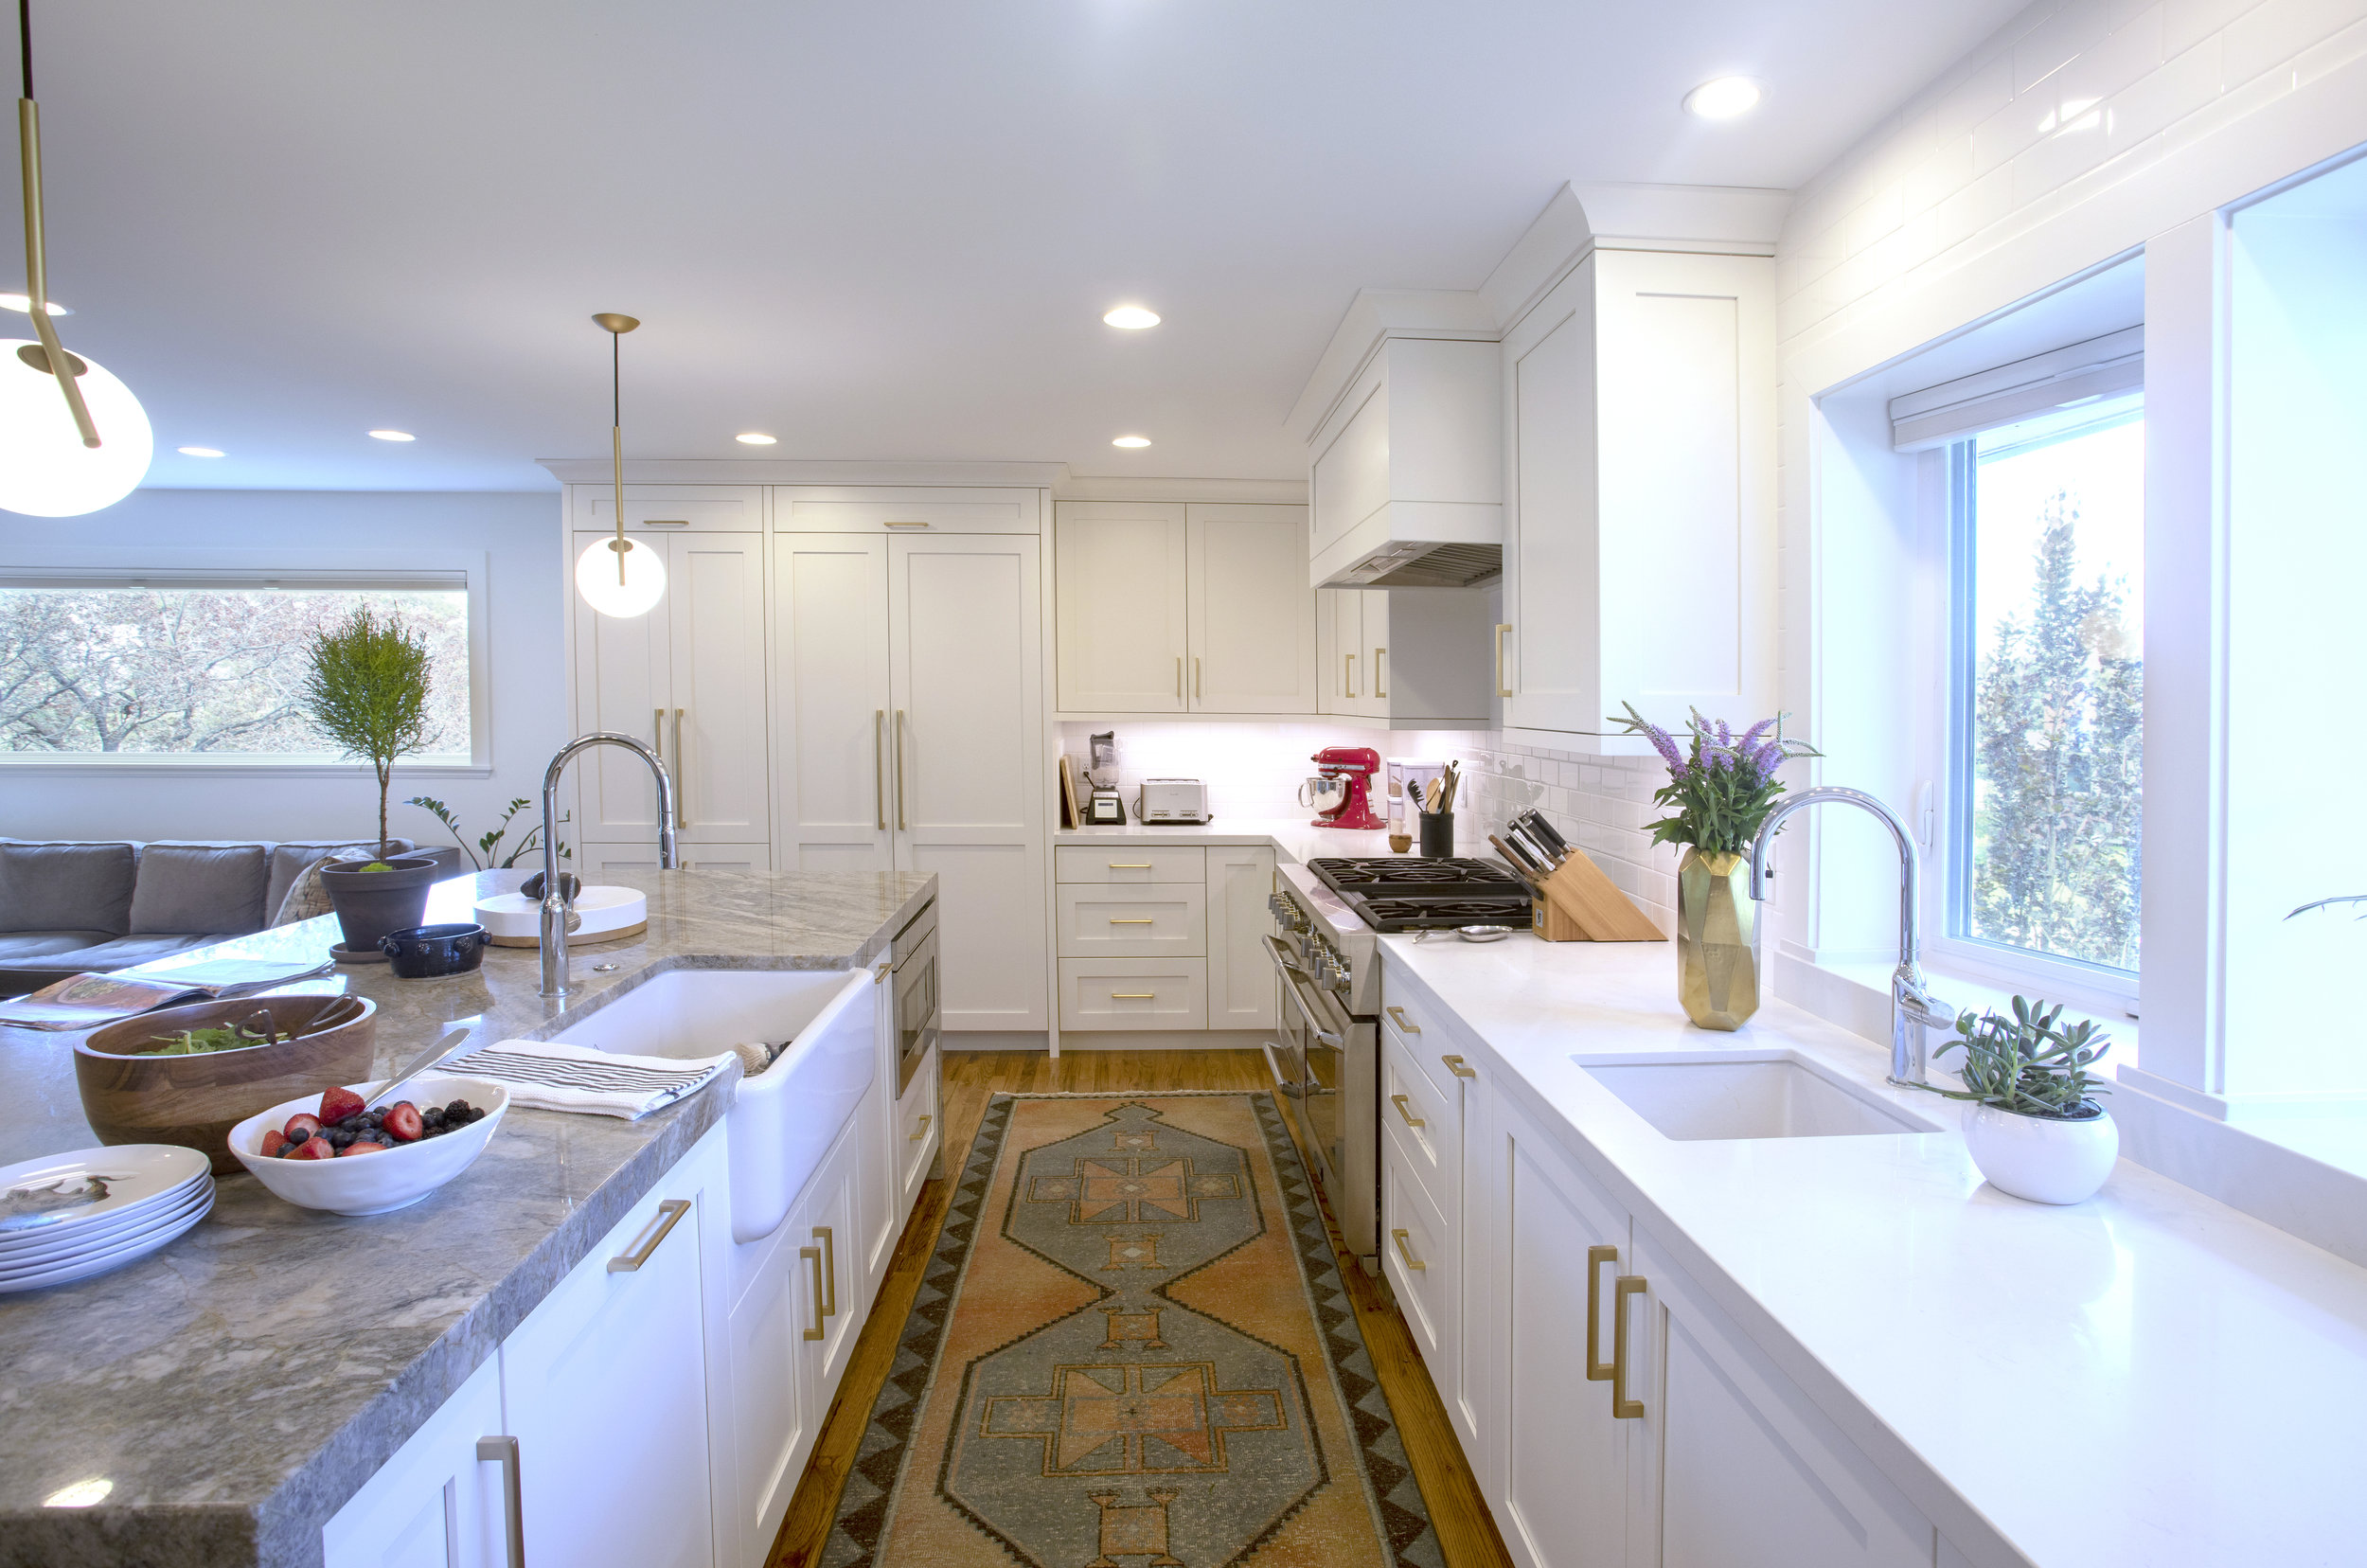 002 JAID  Crest View Kitchen June 2019.jpg